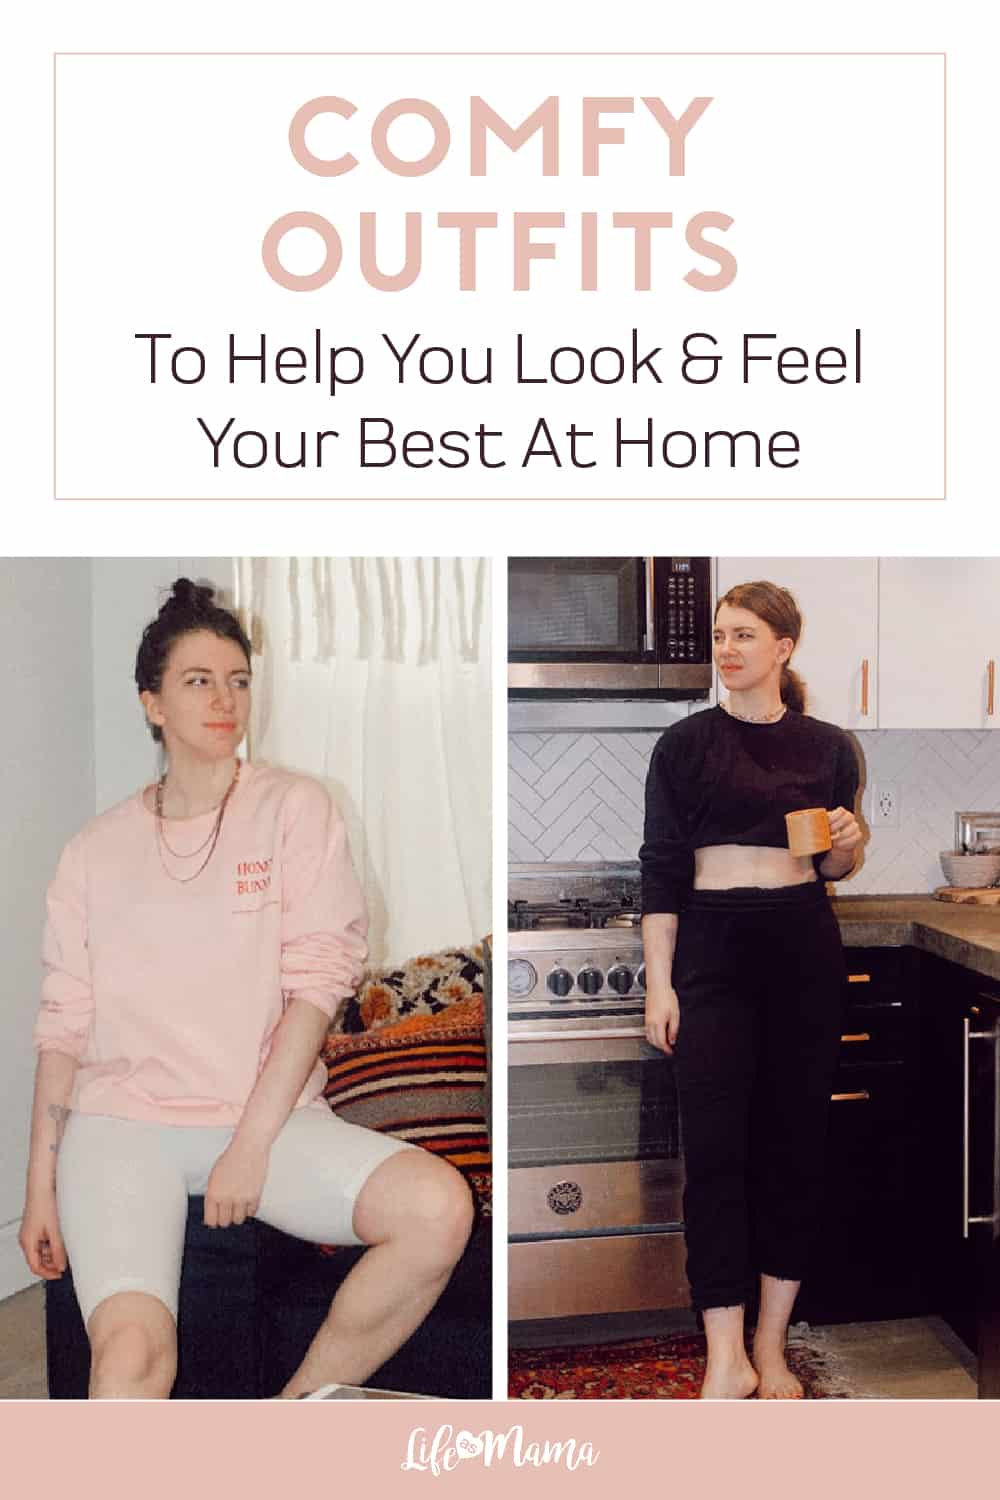 comfy outfits to help you feel and look your best